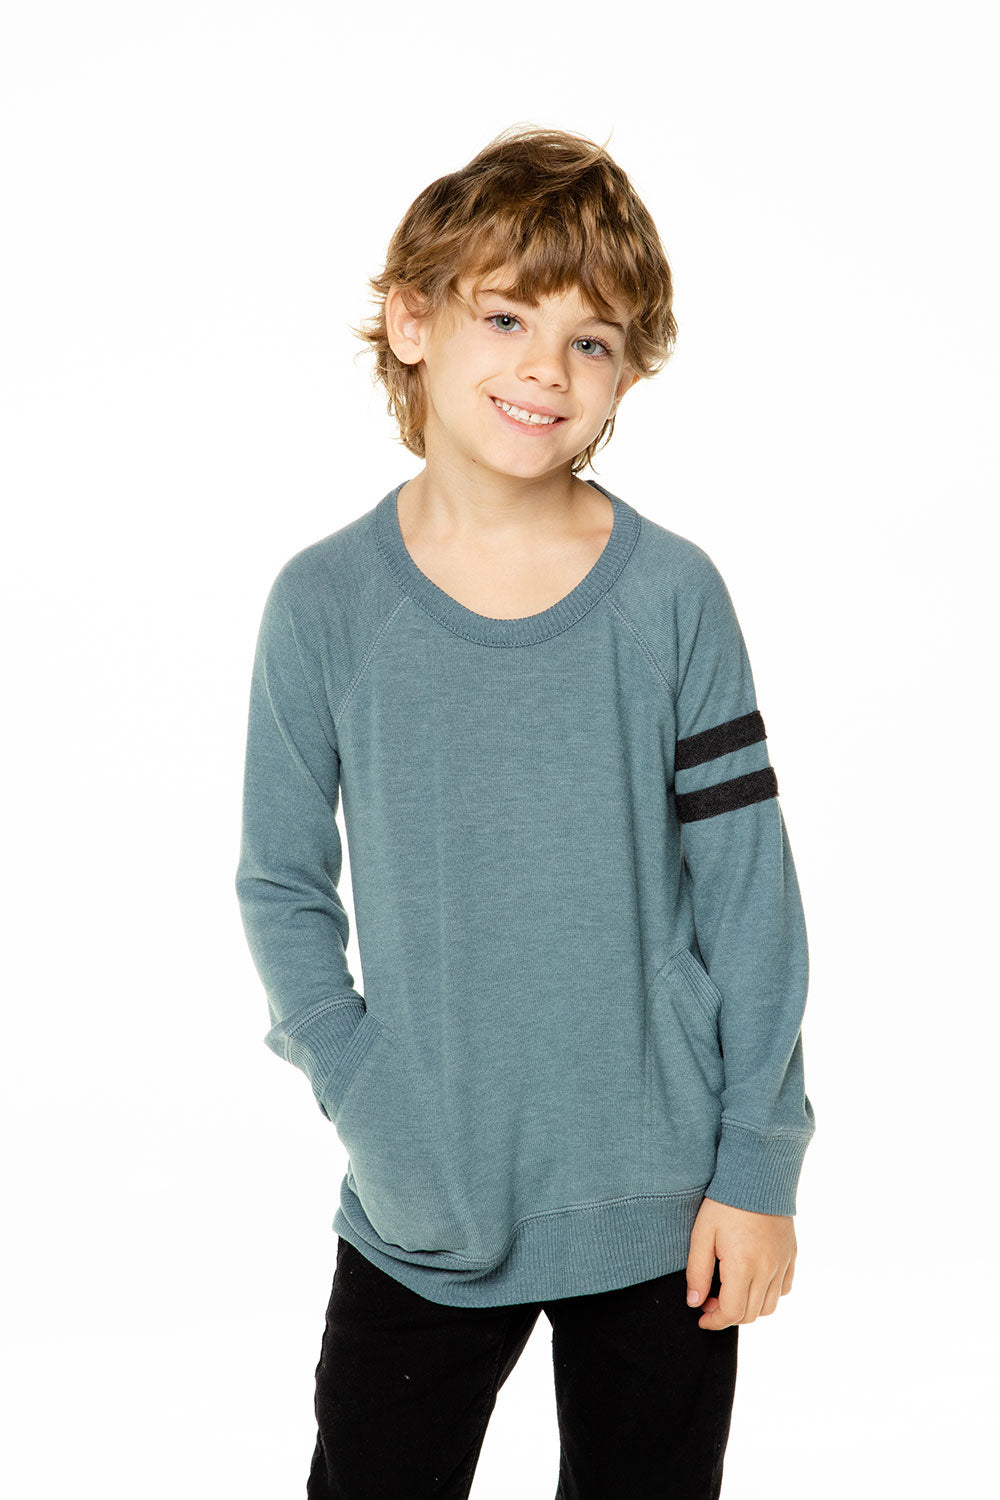 Boys Love Knit Long Sleeve Pocket Pullover with Strappings BOYS - chaserbrand